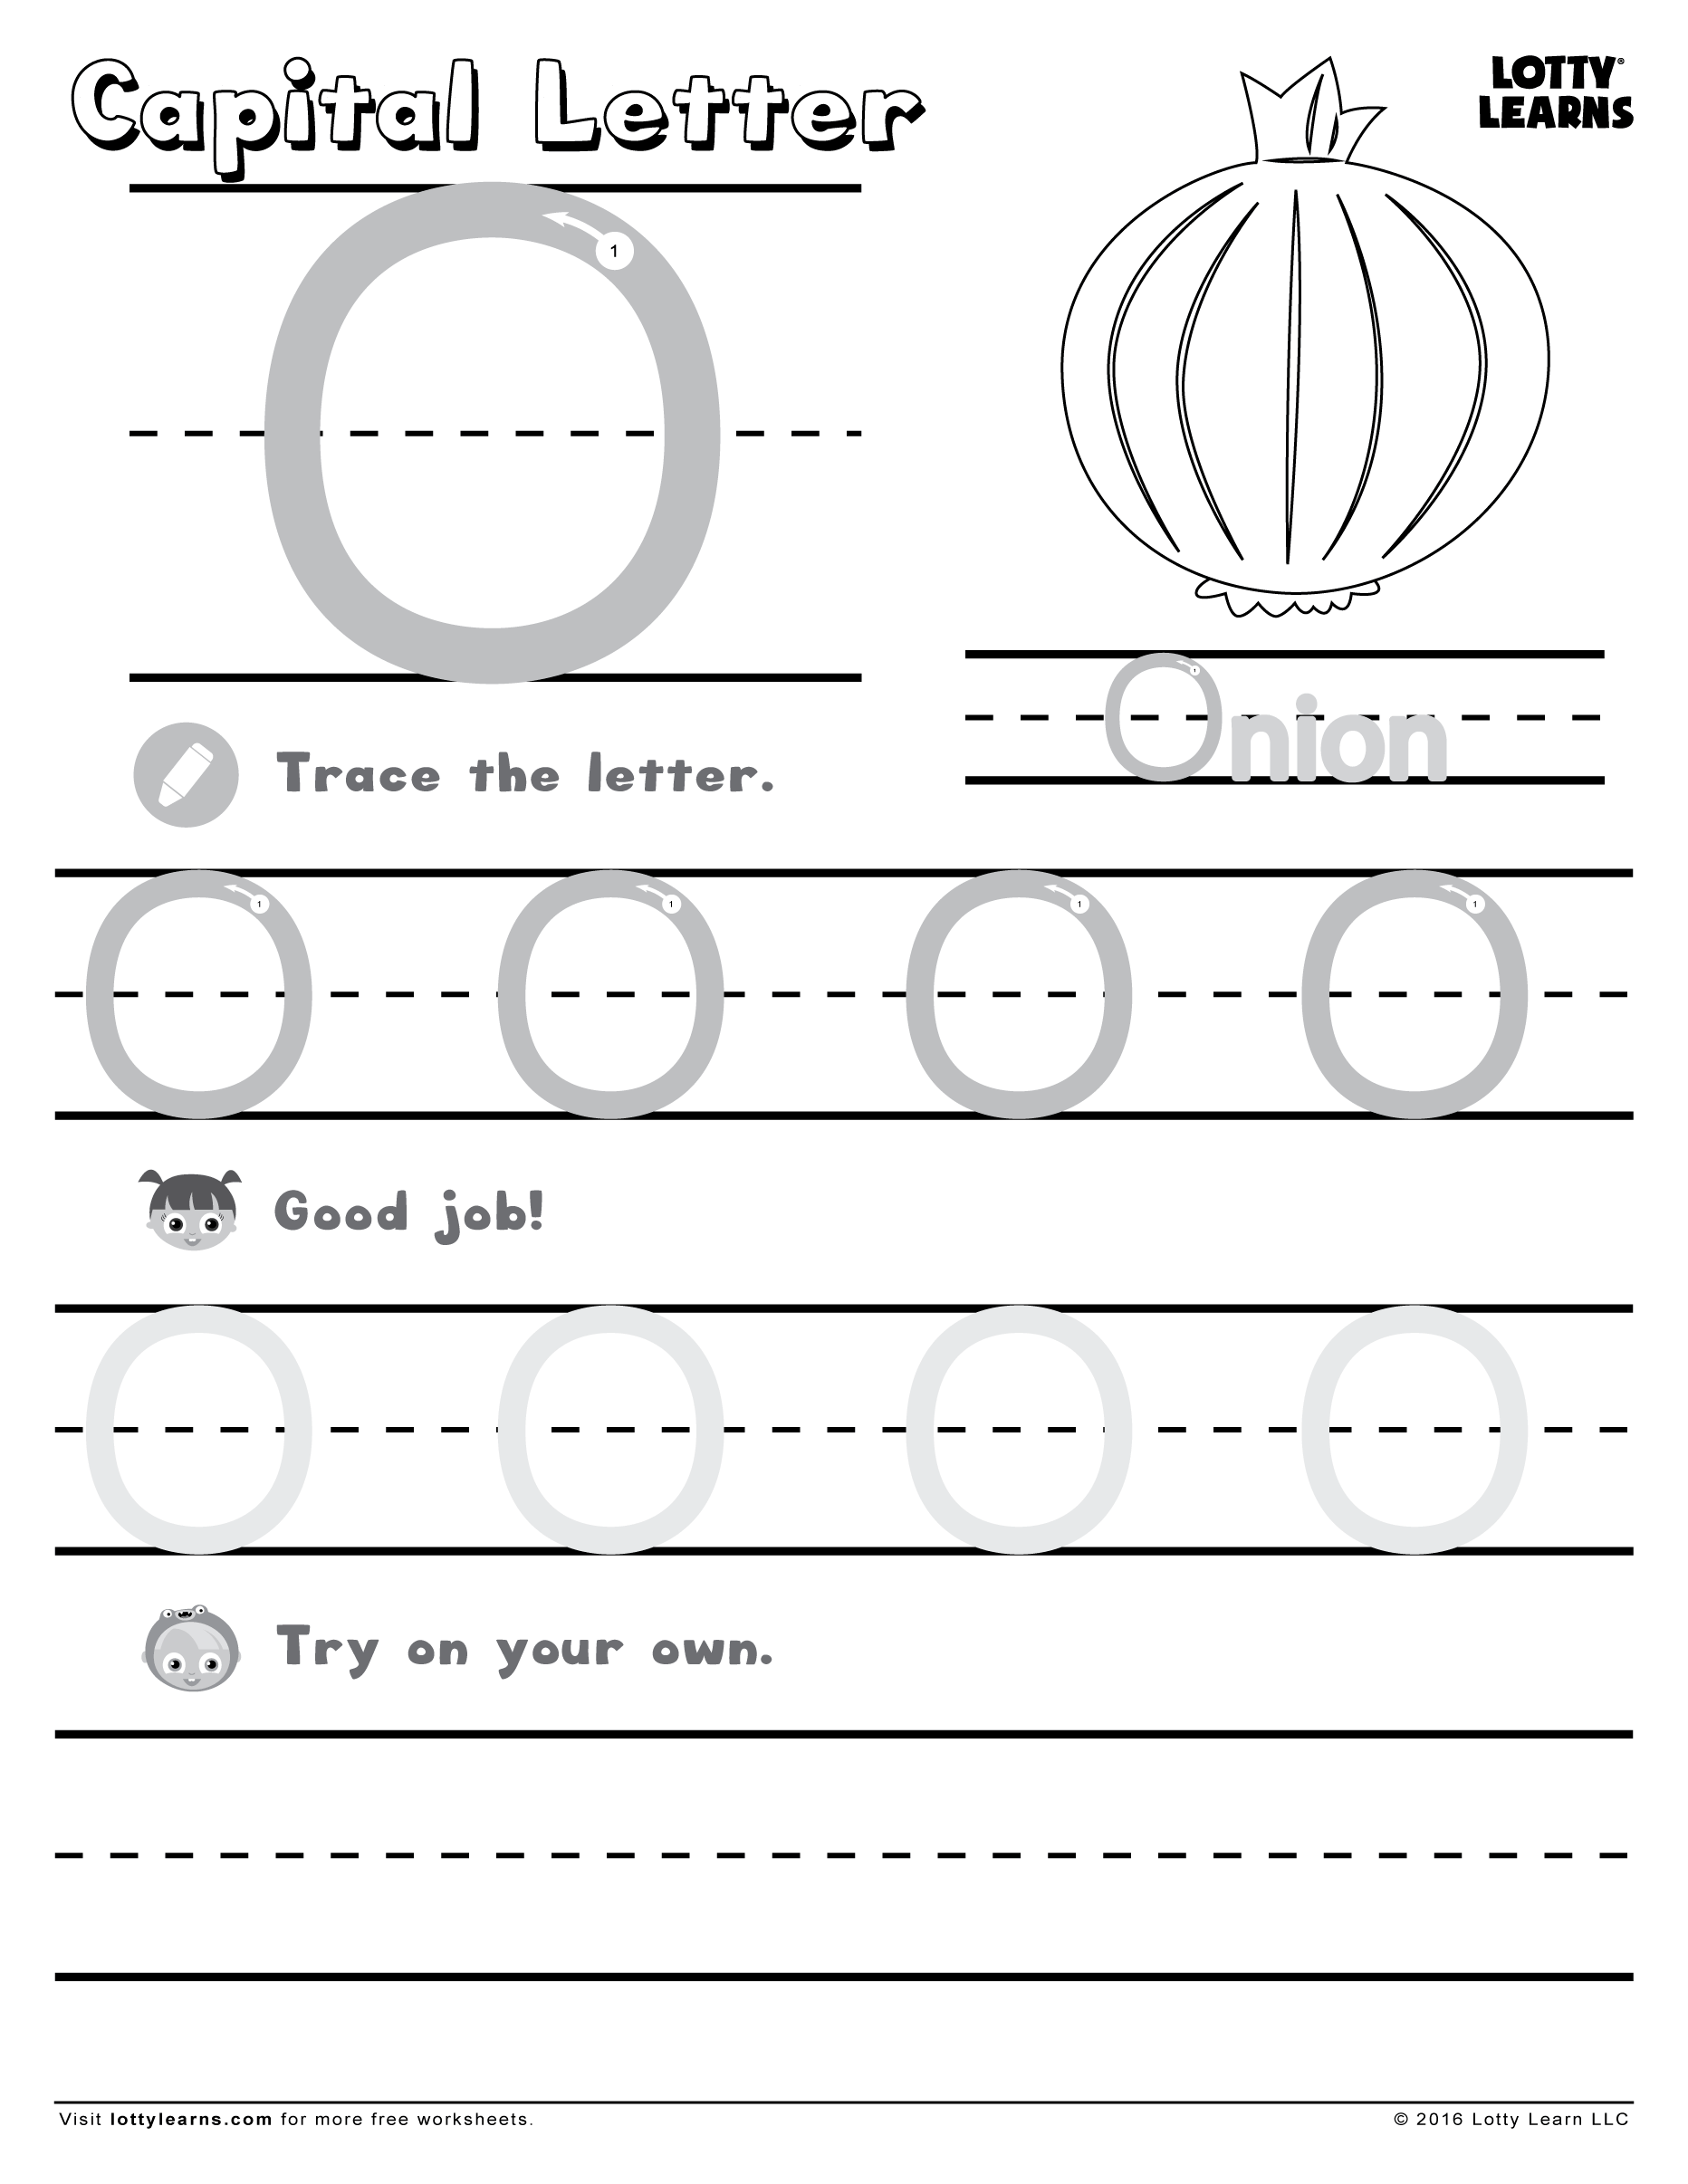 Capital Letter O Lotty Learns Handwriting Worksheets For Kids Alphabet Worksheets Preschool Learning Letters [ 2412 x 1864 Pixel ]